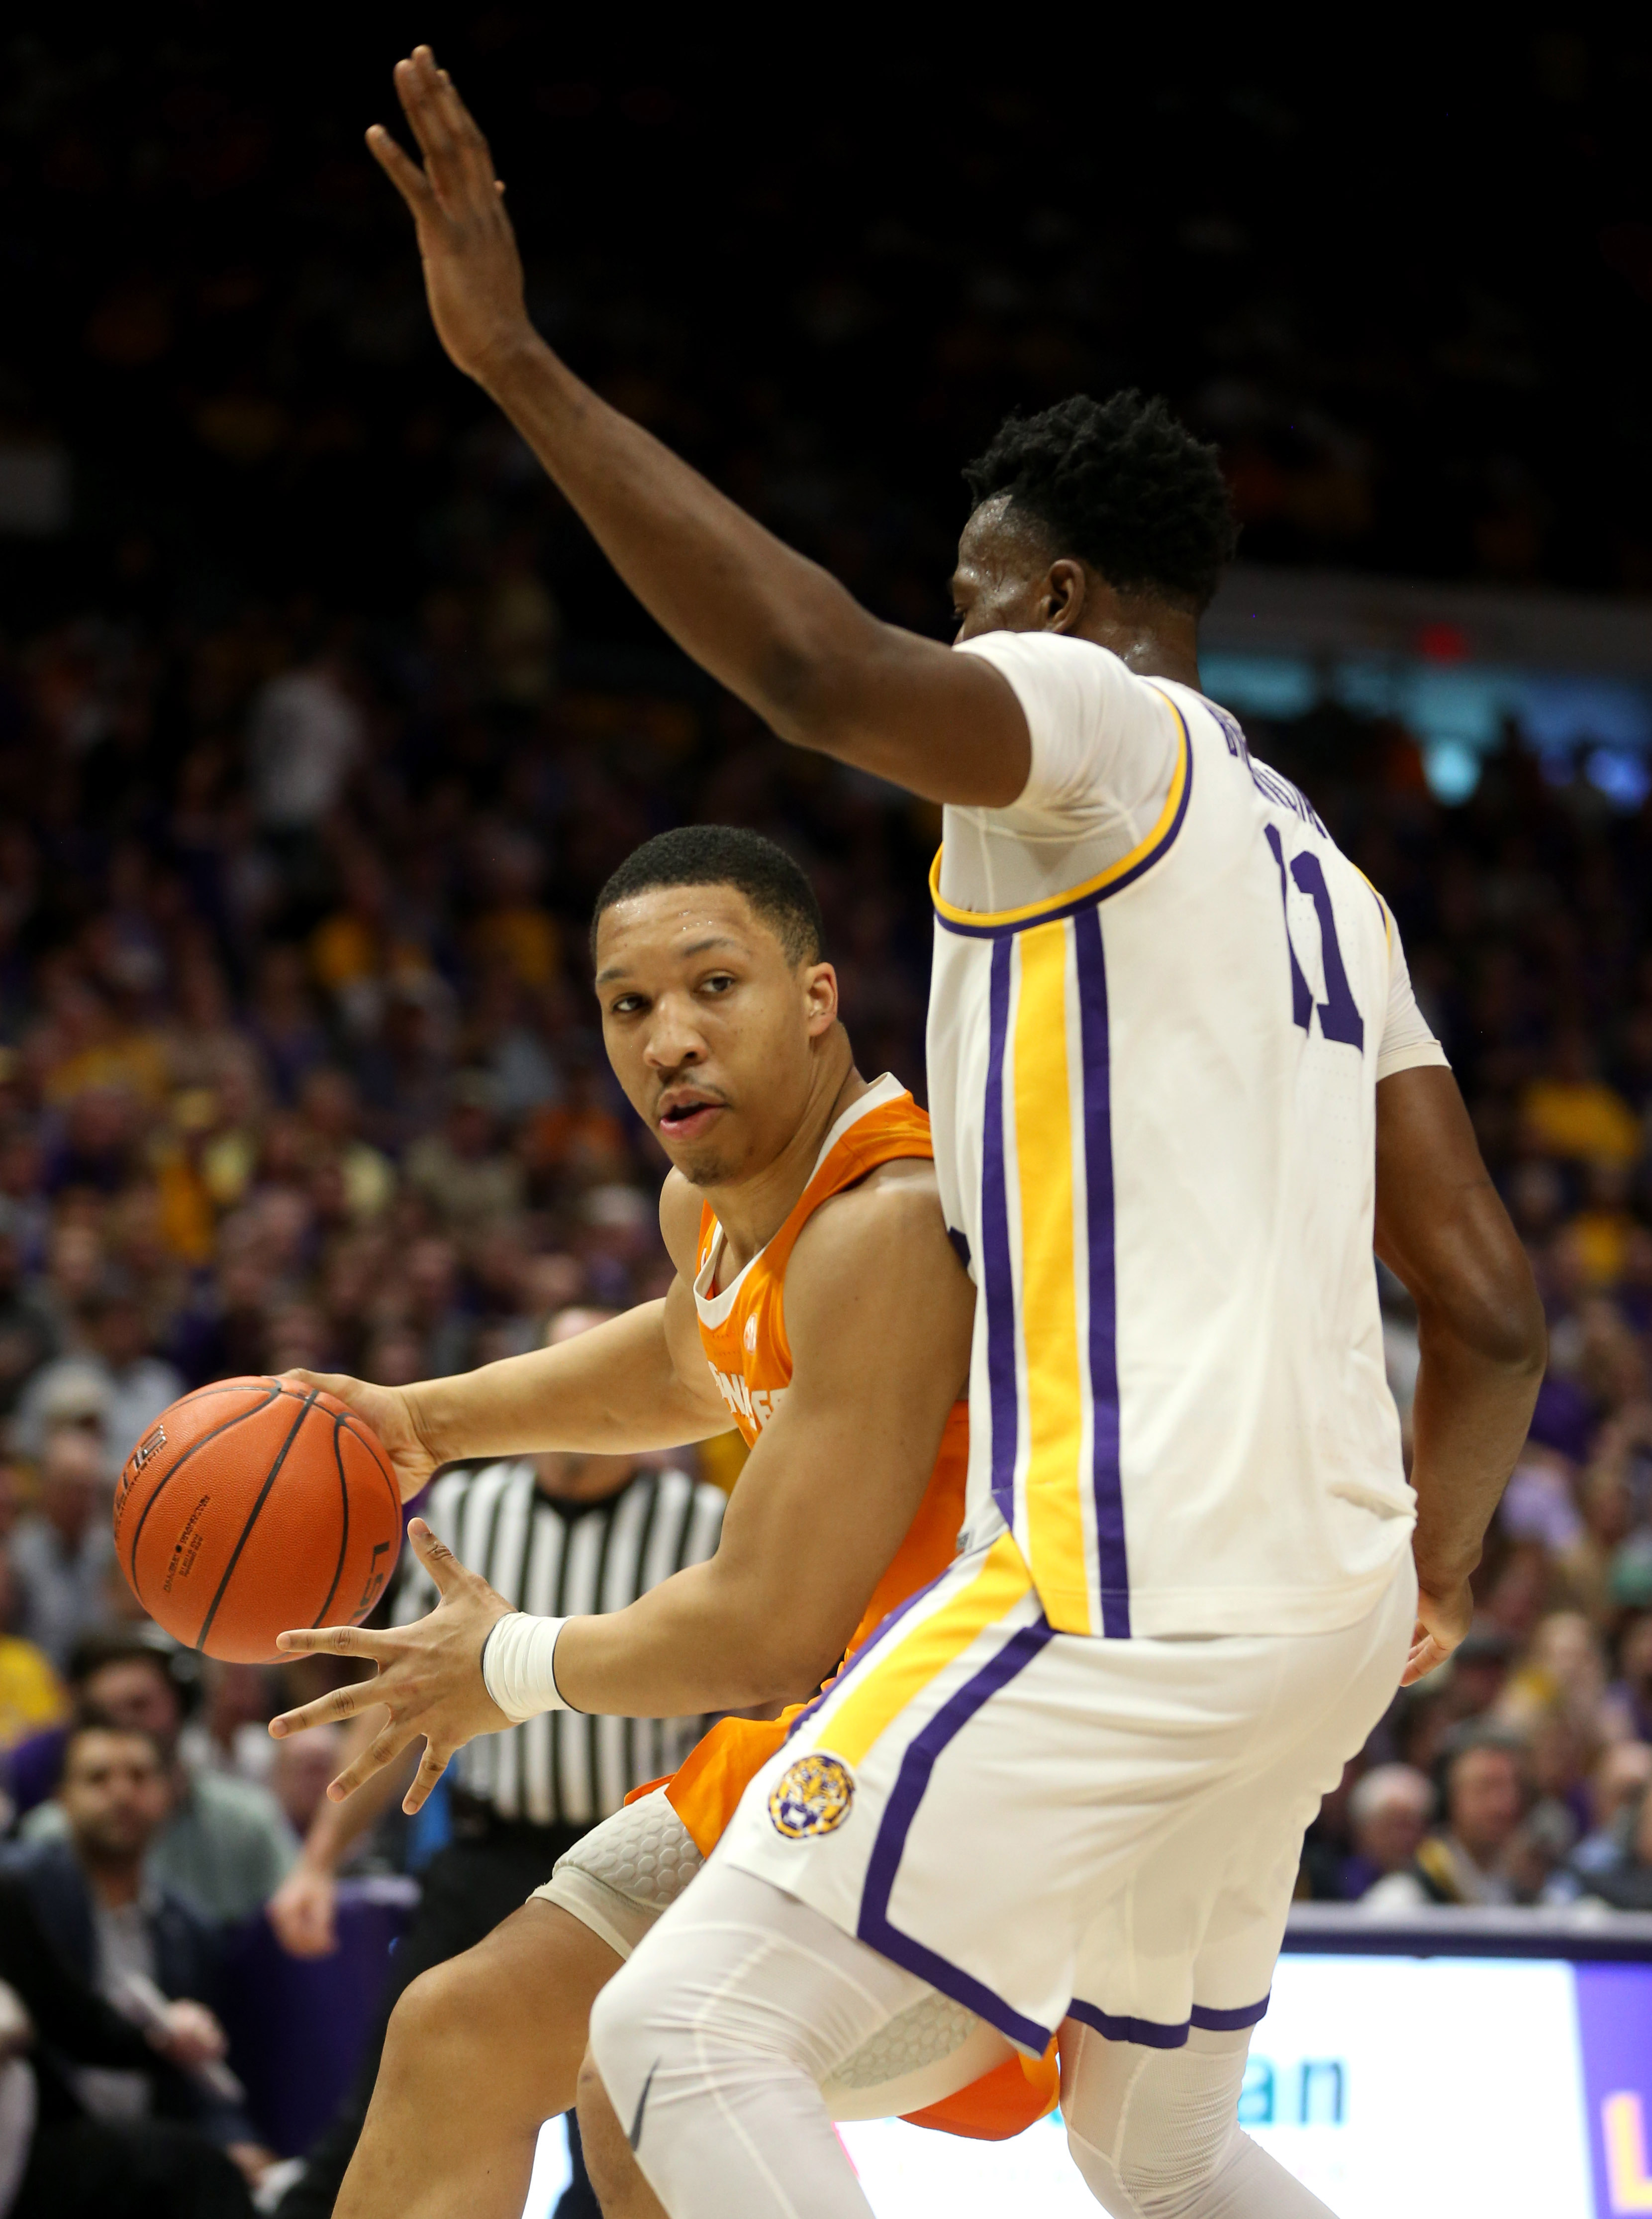 Smart lifts No. 13 LSU past No. 5 Tennessee in OT win